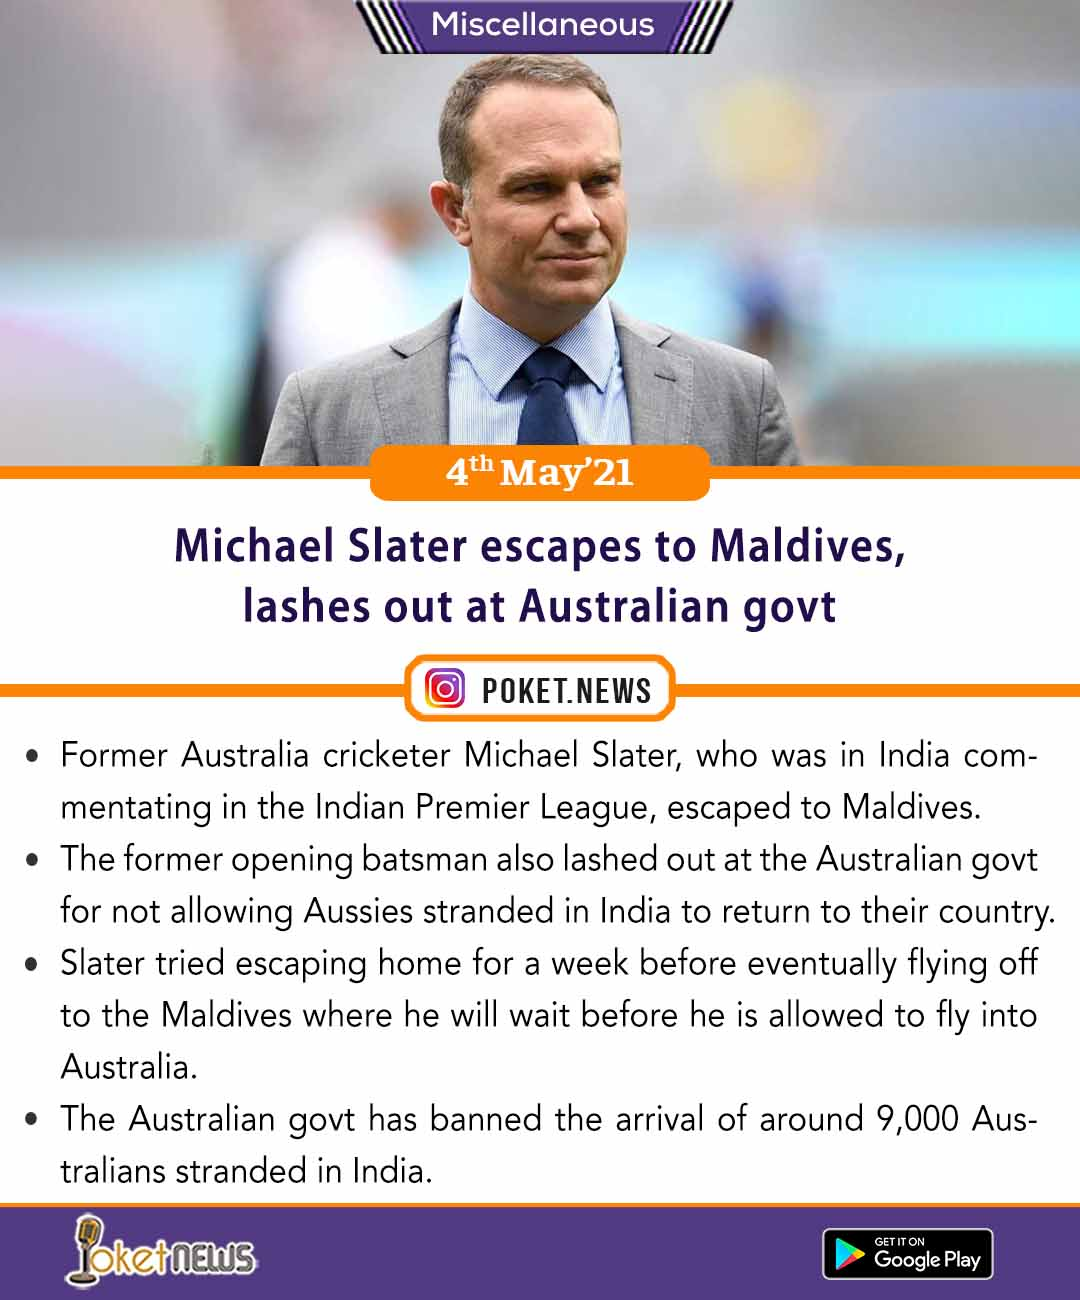 Michael Slater escapes to Maldives, lashes out at Australian govt